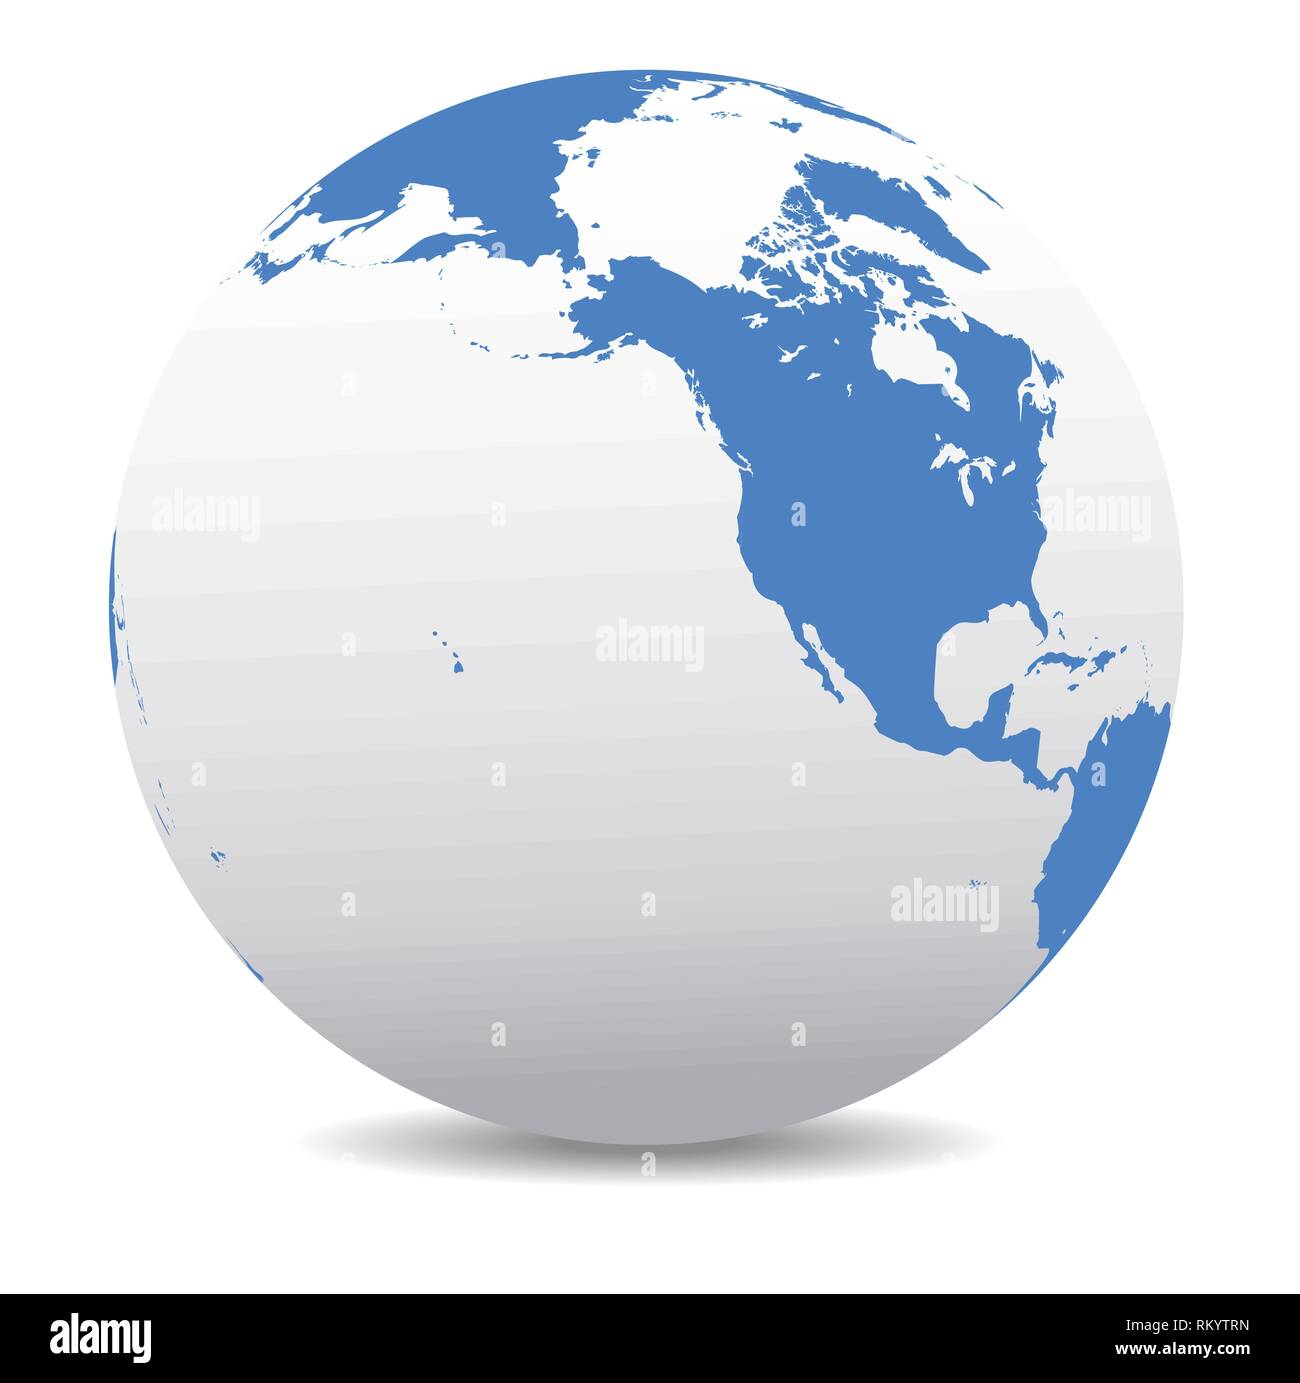 North America Canada Siberia And Hawaii Global World Vector Map